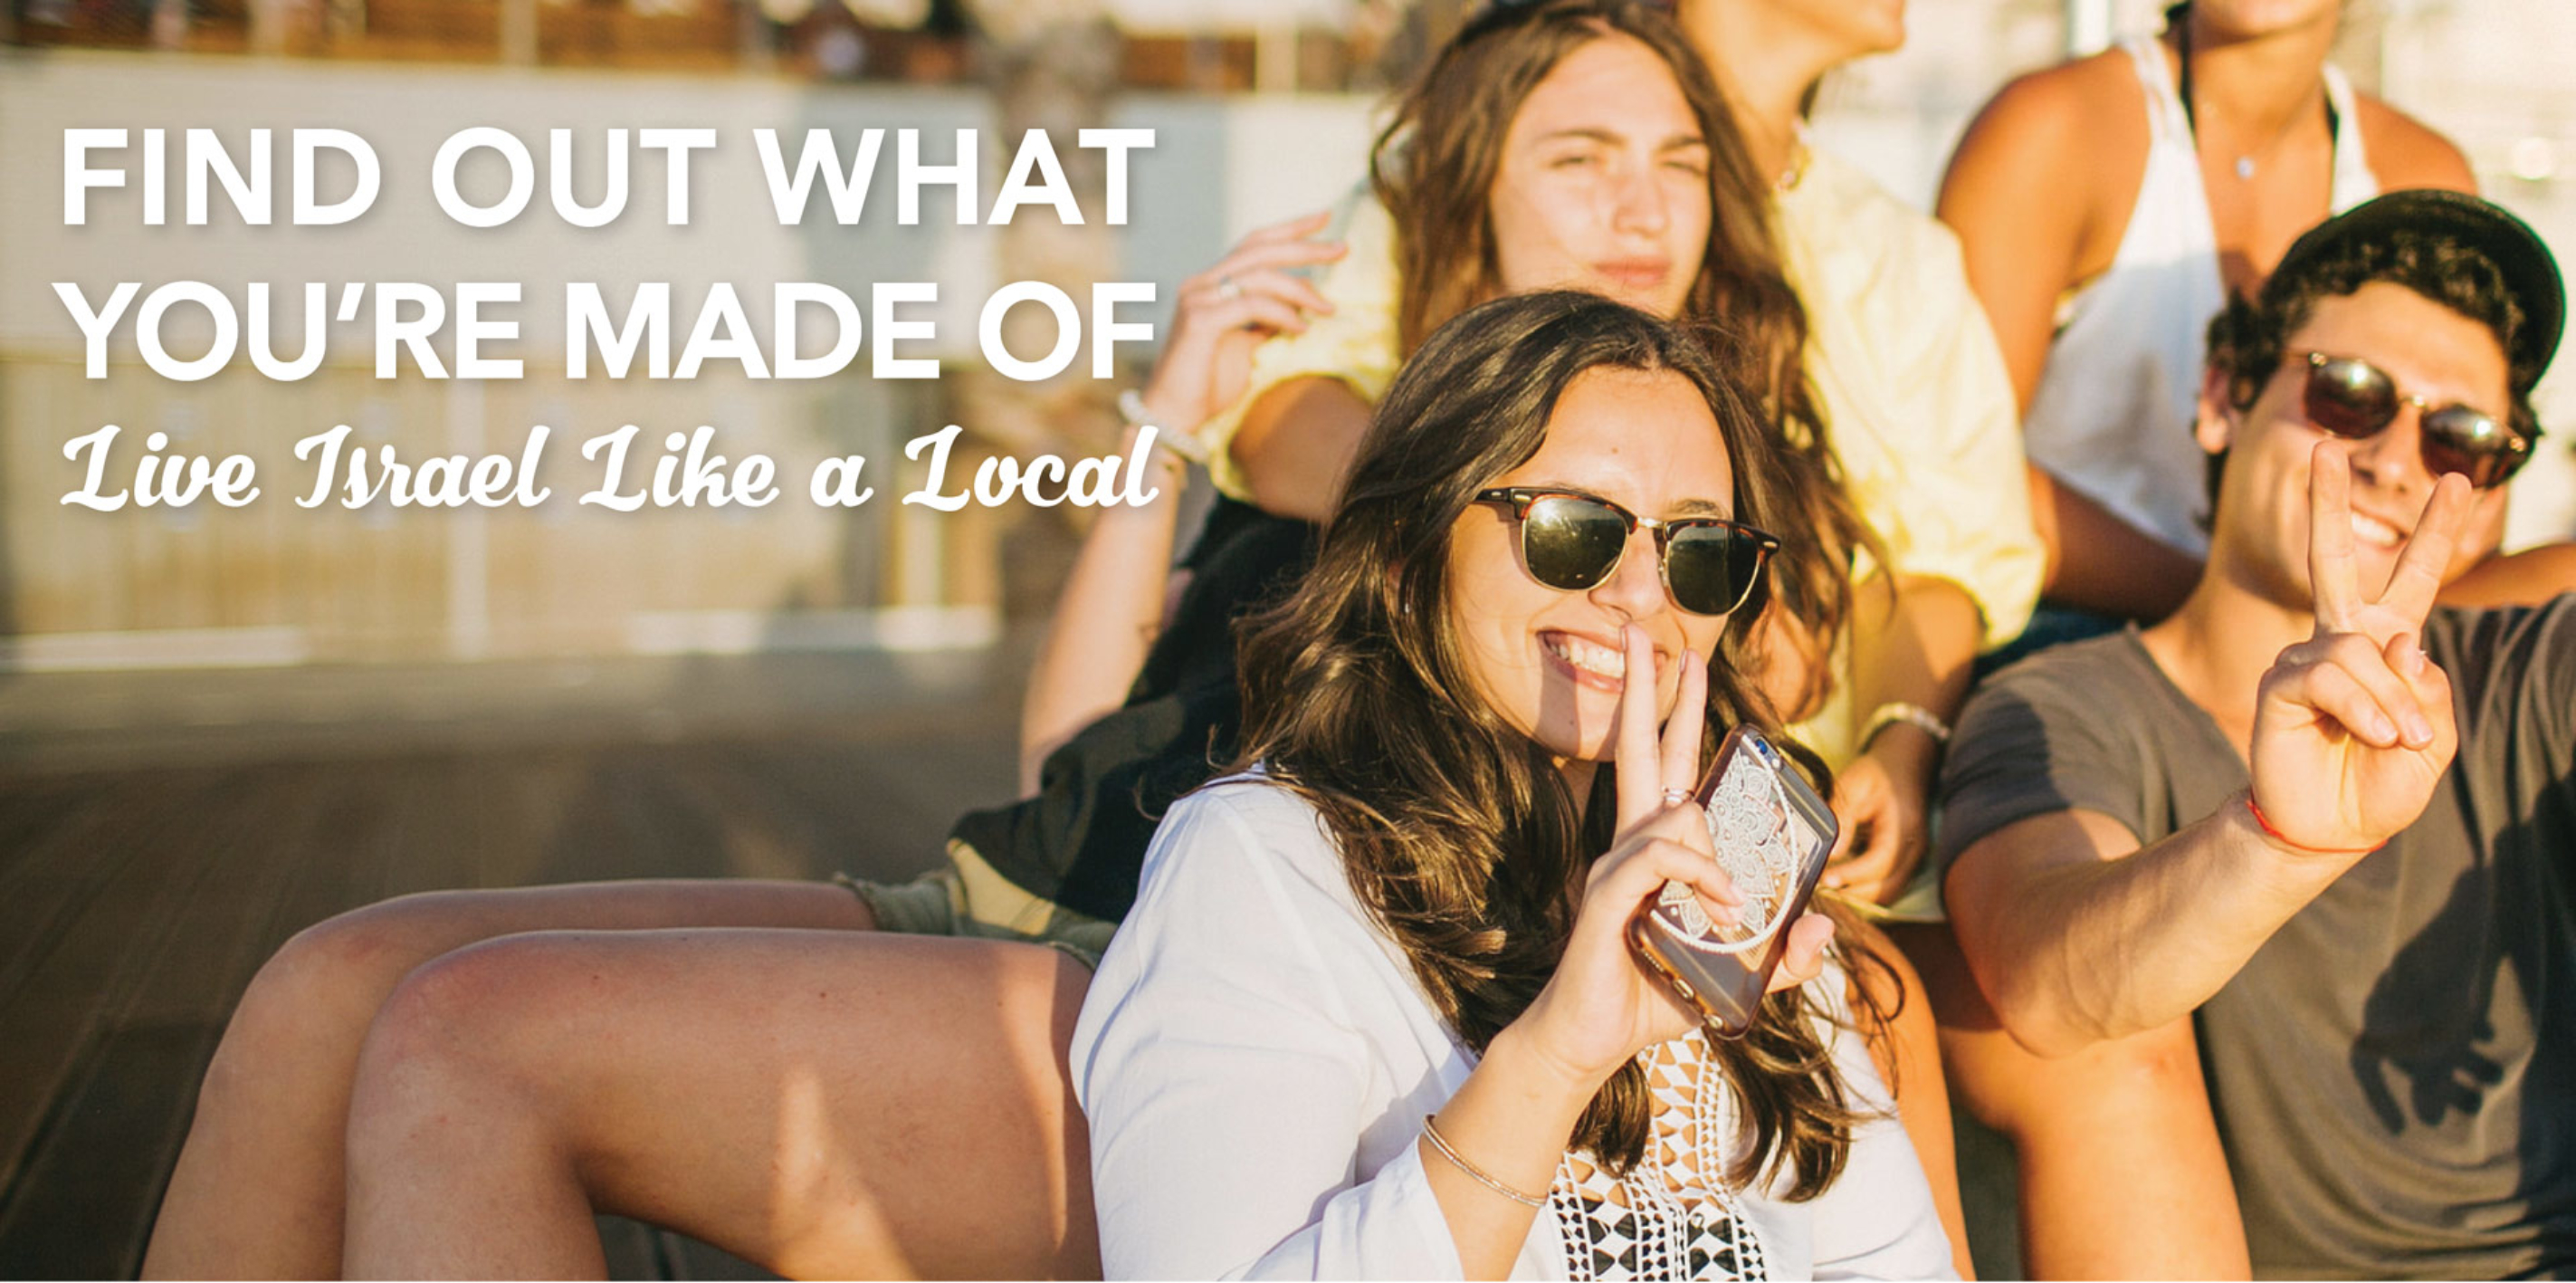 Find out what you're made of - Live Israel Like a local